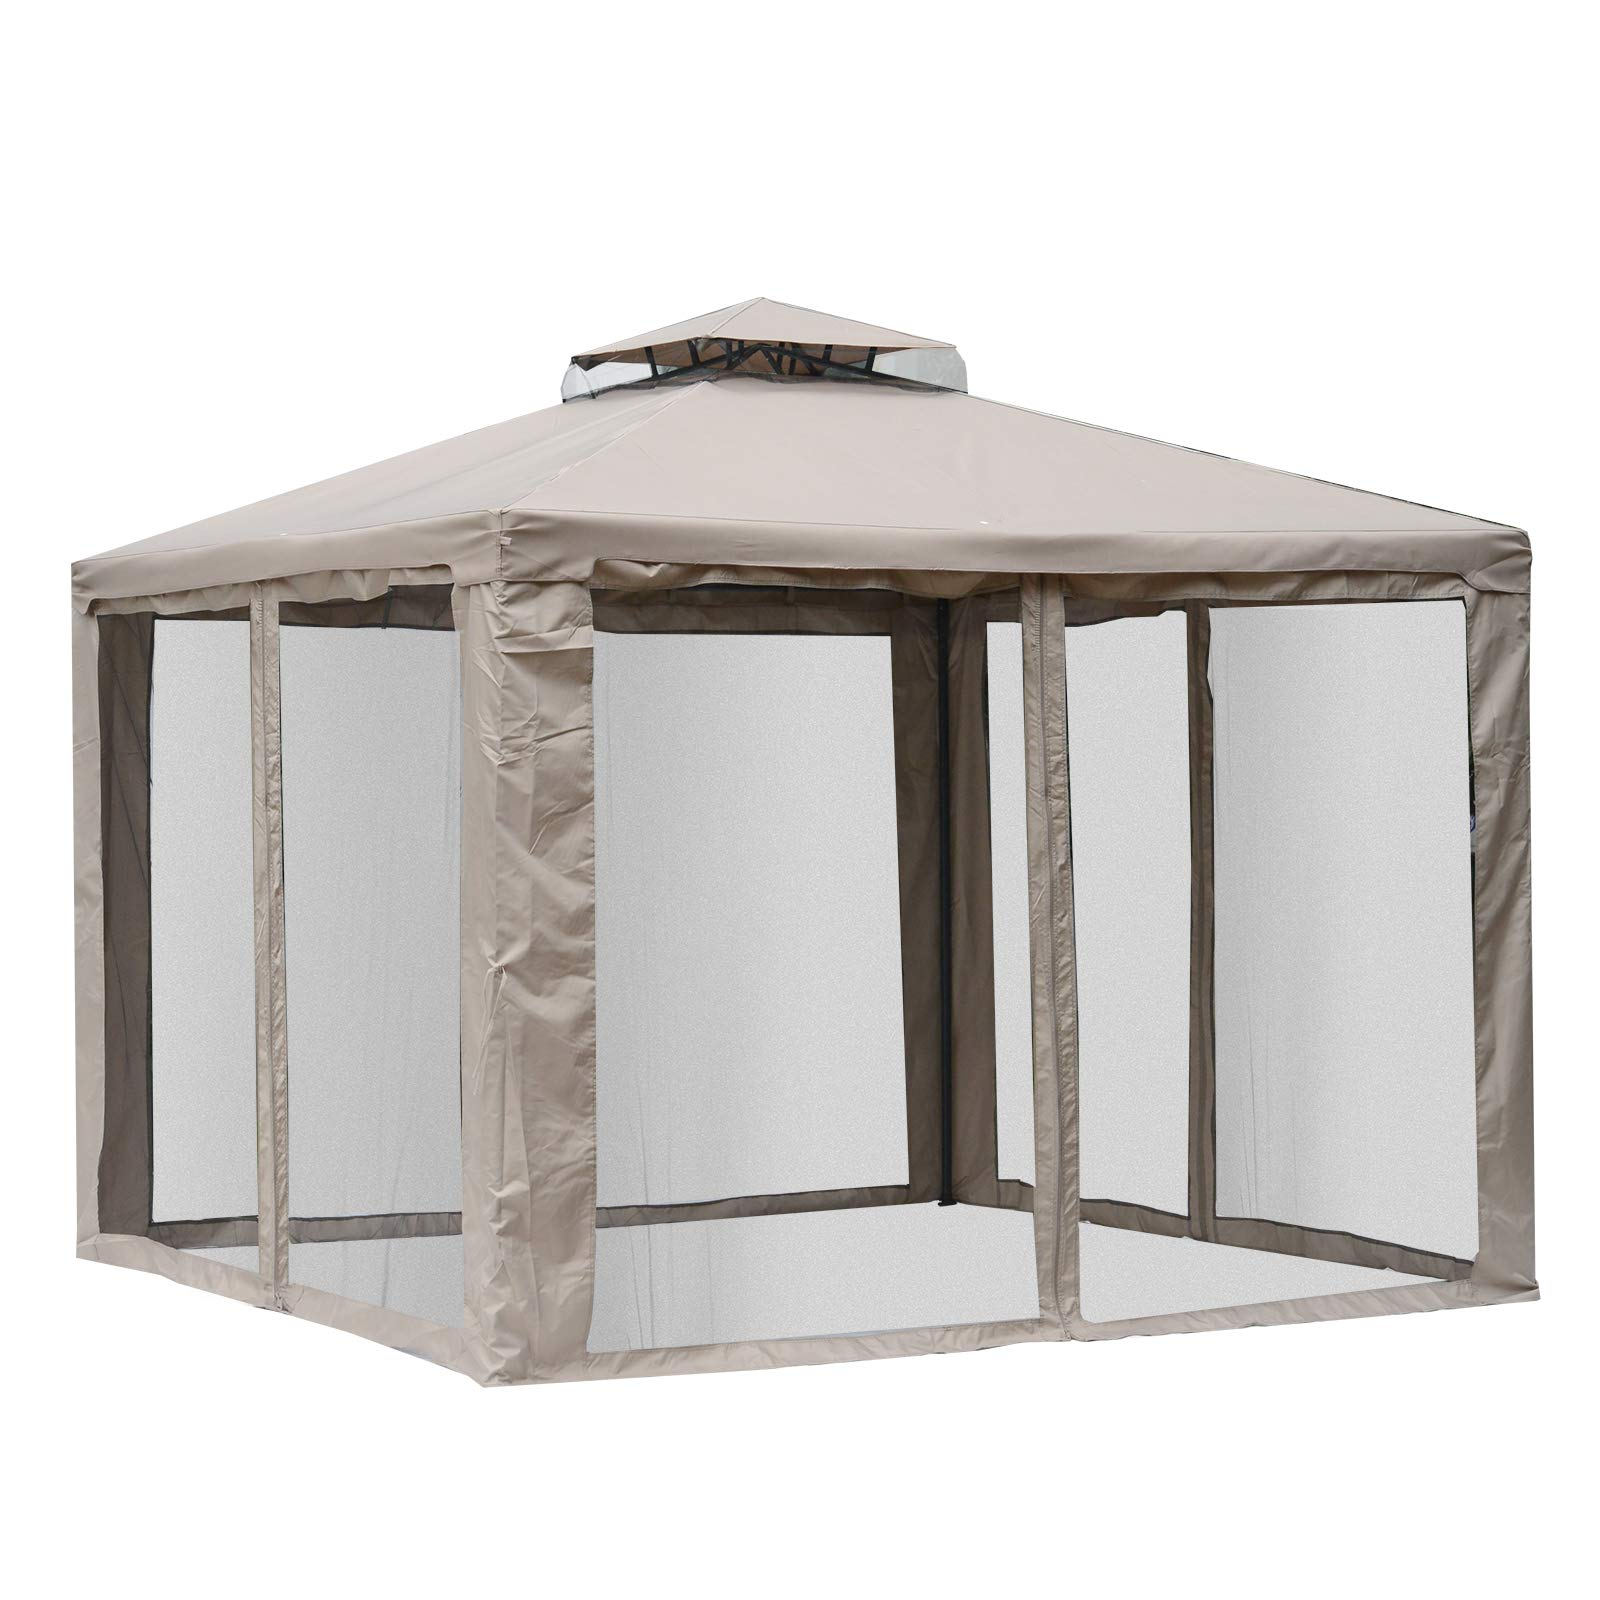 Outsunny 10' x 10' Steel Fabric 2.95m /9.7' Outdoor Patio Gazebo Pavilion Canopy Tent Steel 2-Tier Roof with Netting Square Outdoor Gazebo with Mosquito Netting - Taupe